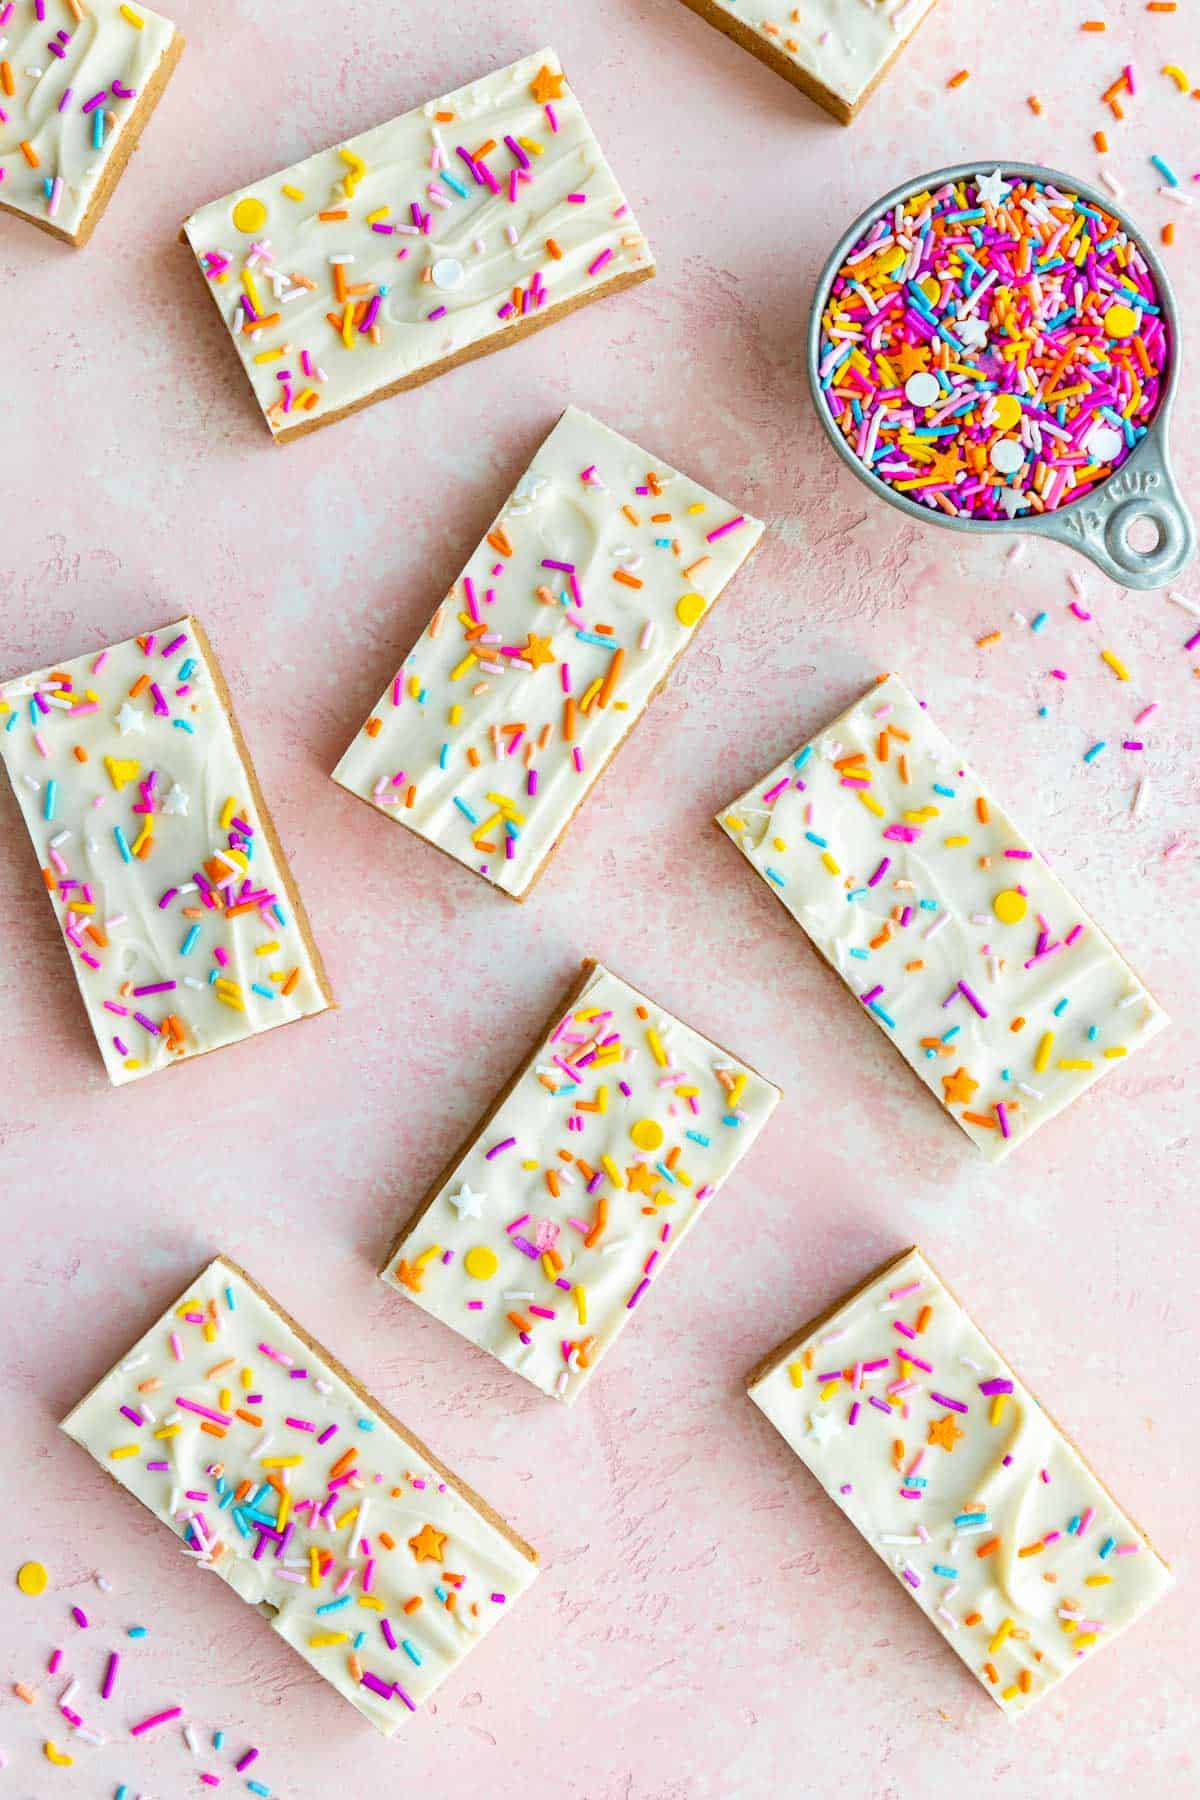 vegan birthday cake protein bars with white chocolate and sprinkles